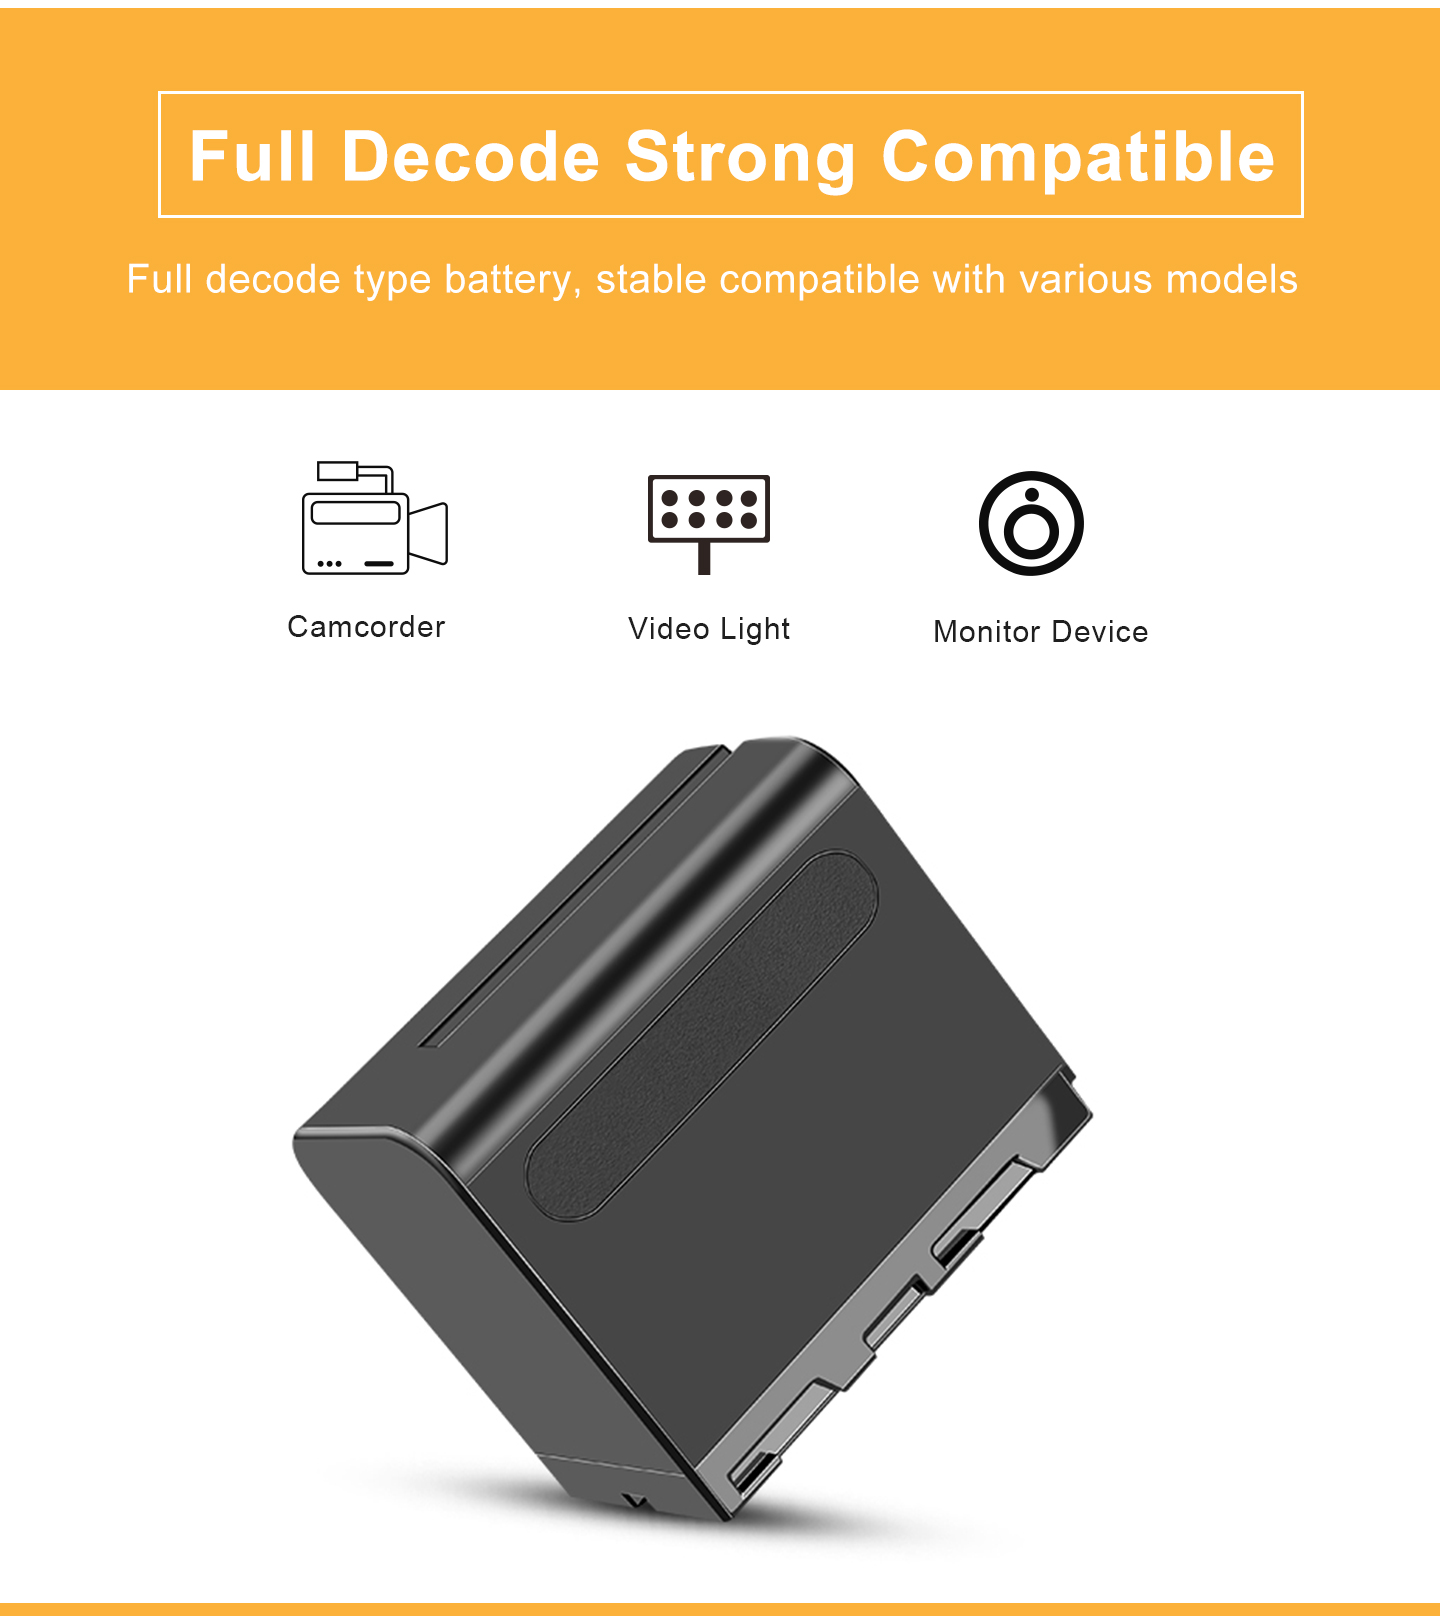 Full Decode Strong Compatible